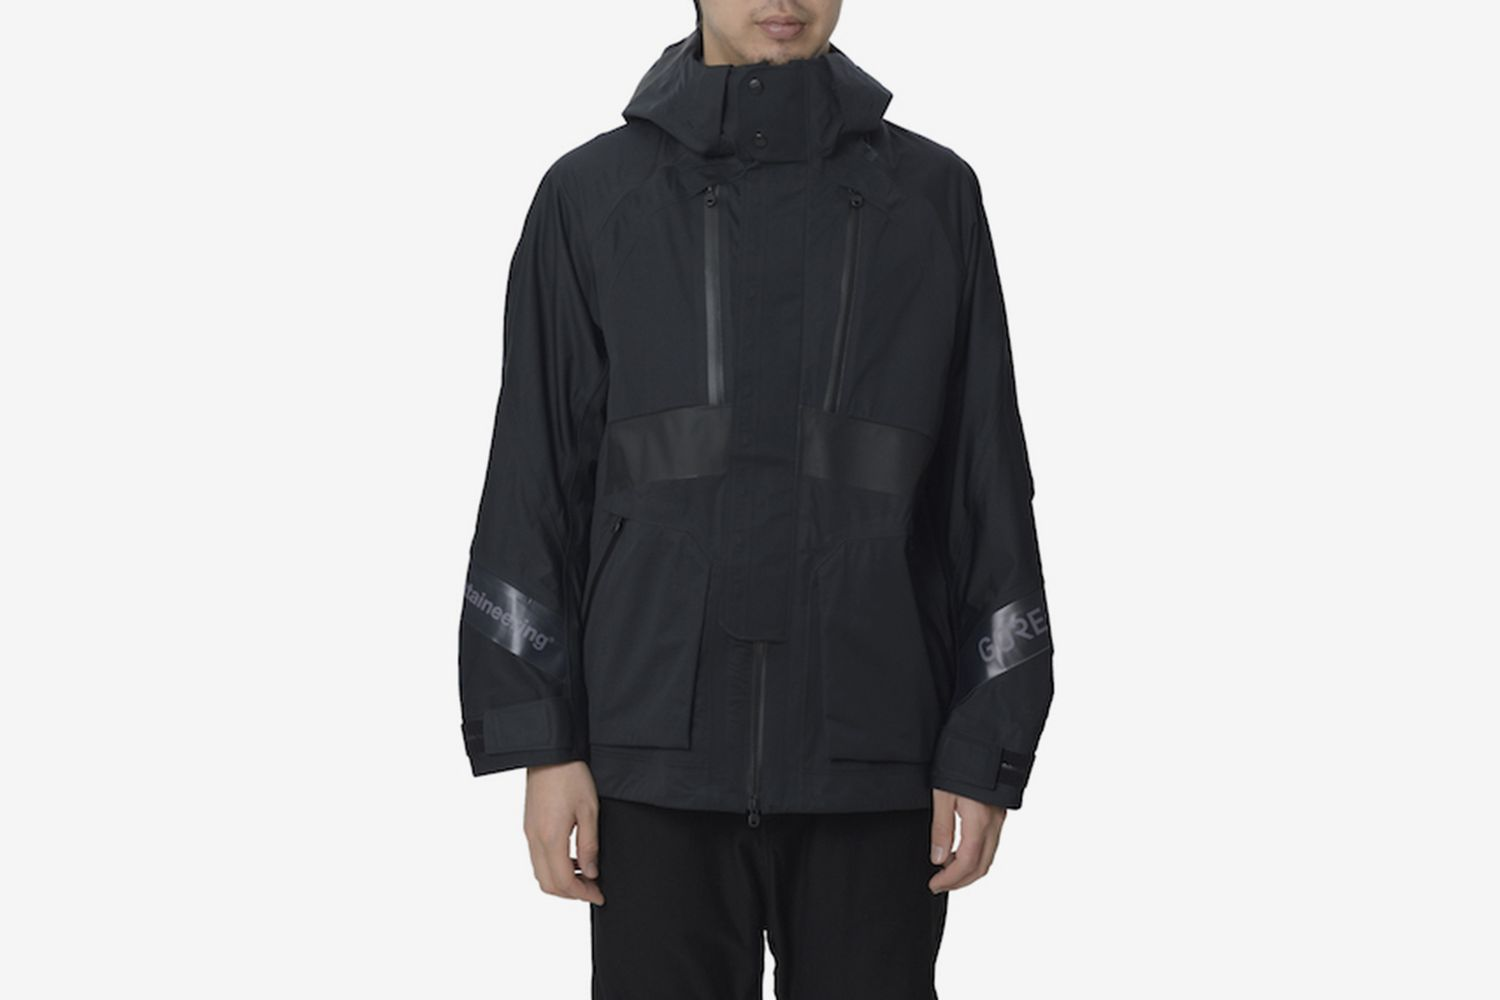 GORE-TEX Contrasted Parka